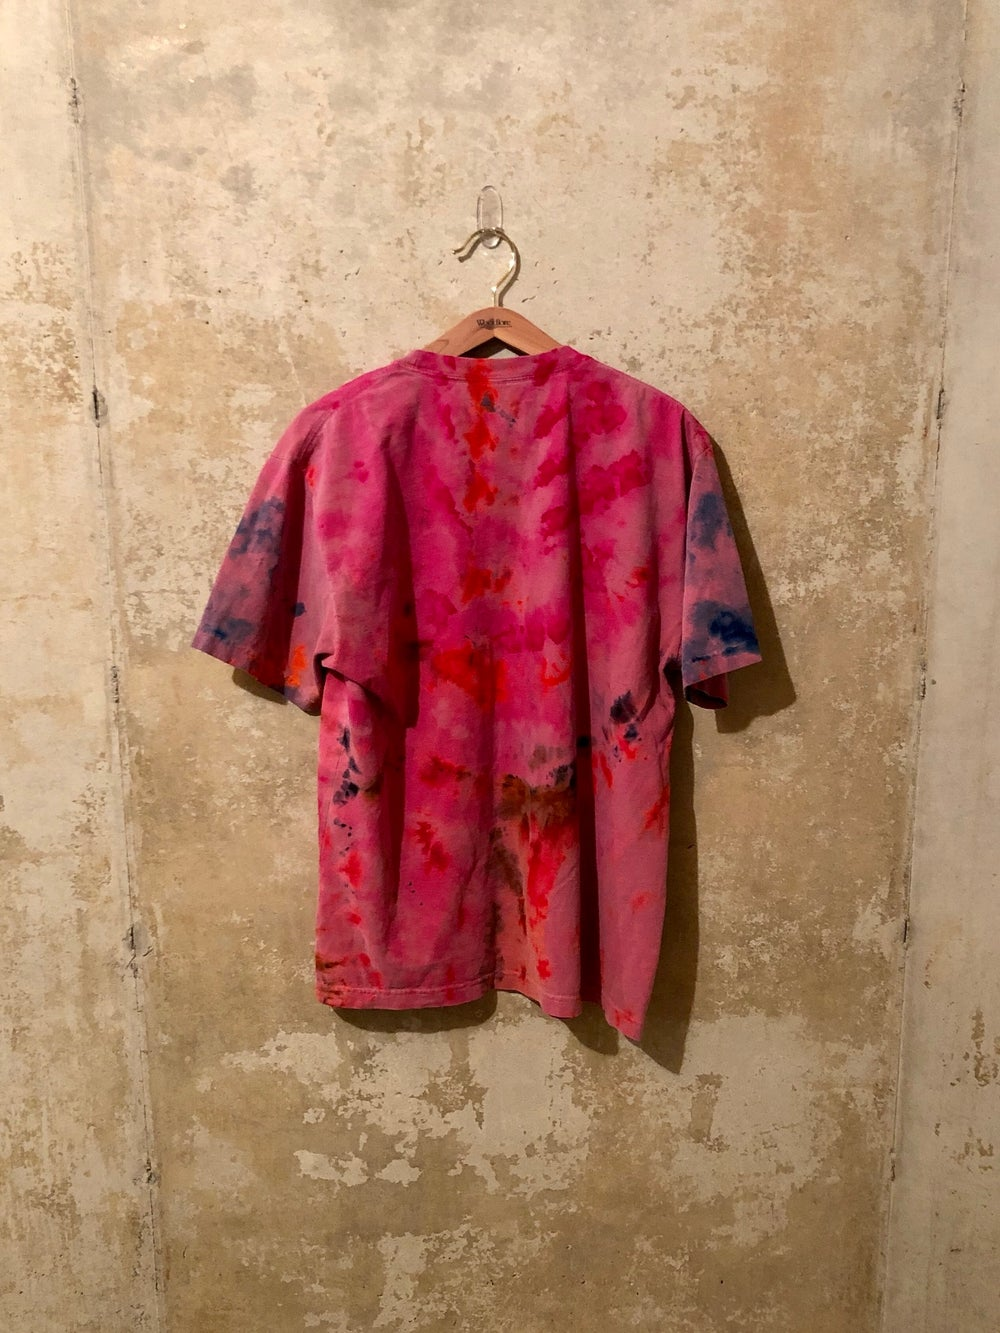 Medium Puff Print Tye Dye Shirt #13